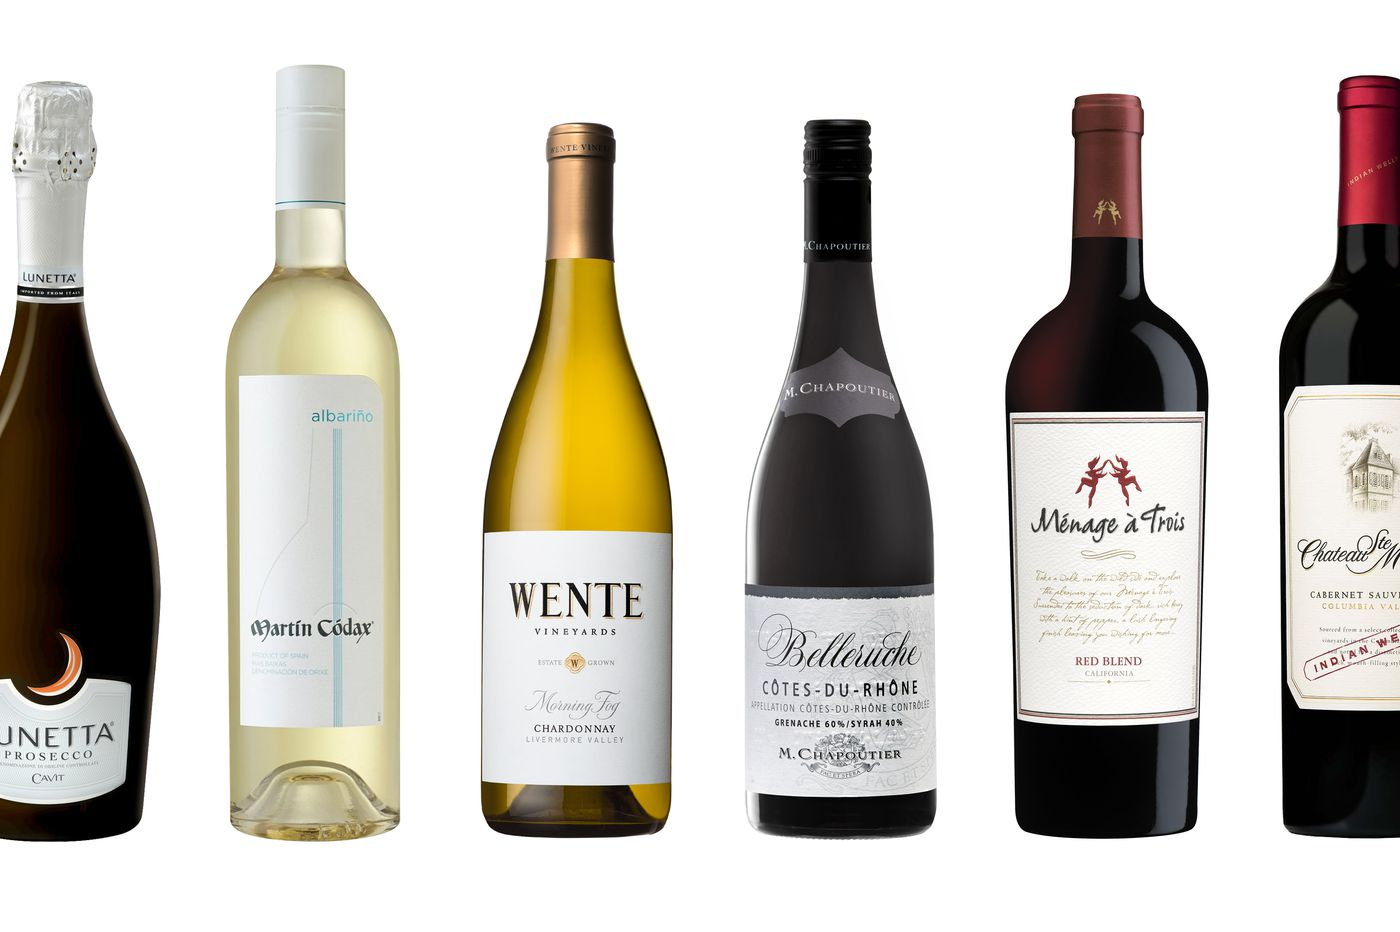 Our top 6 wine picks for LCB curbside pickup